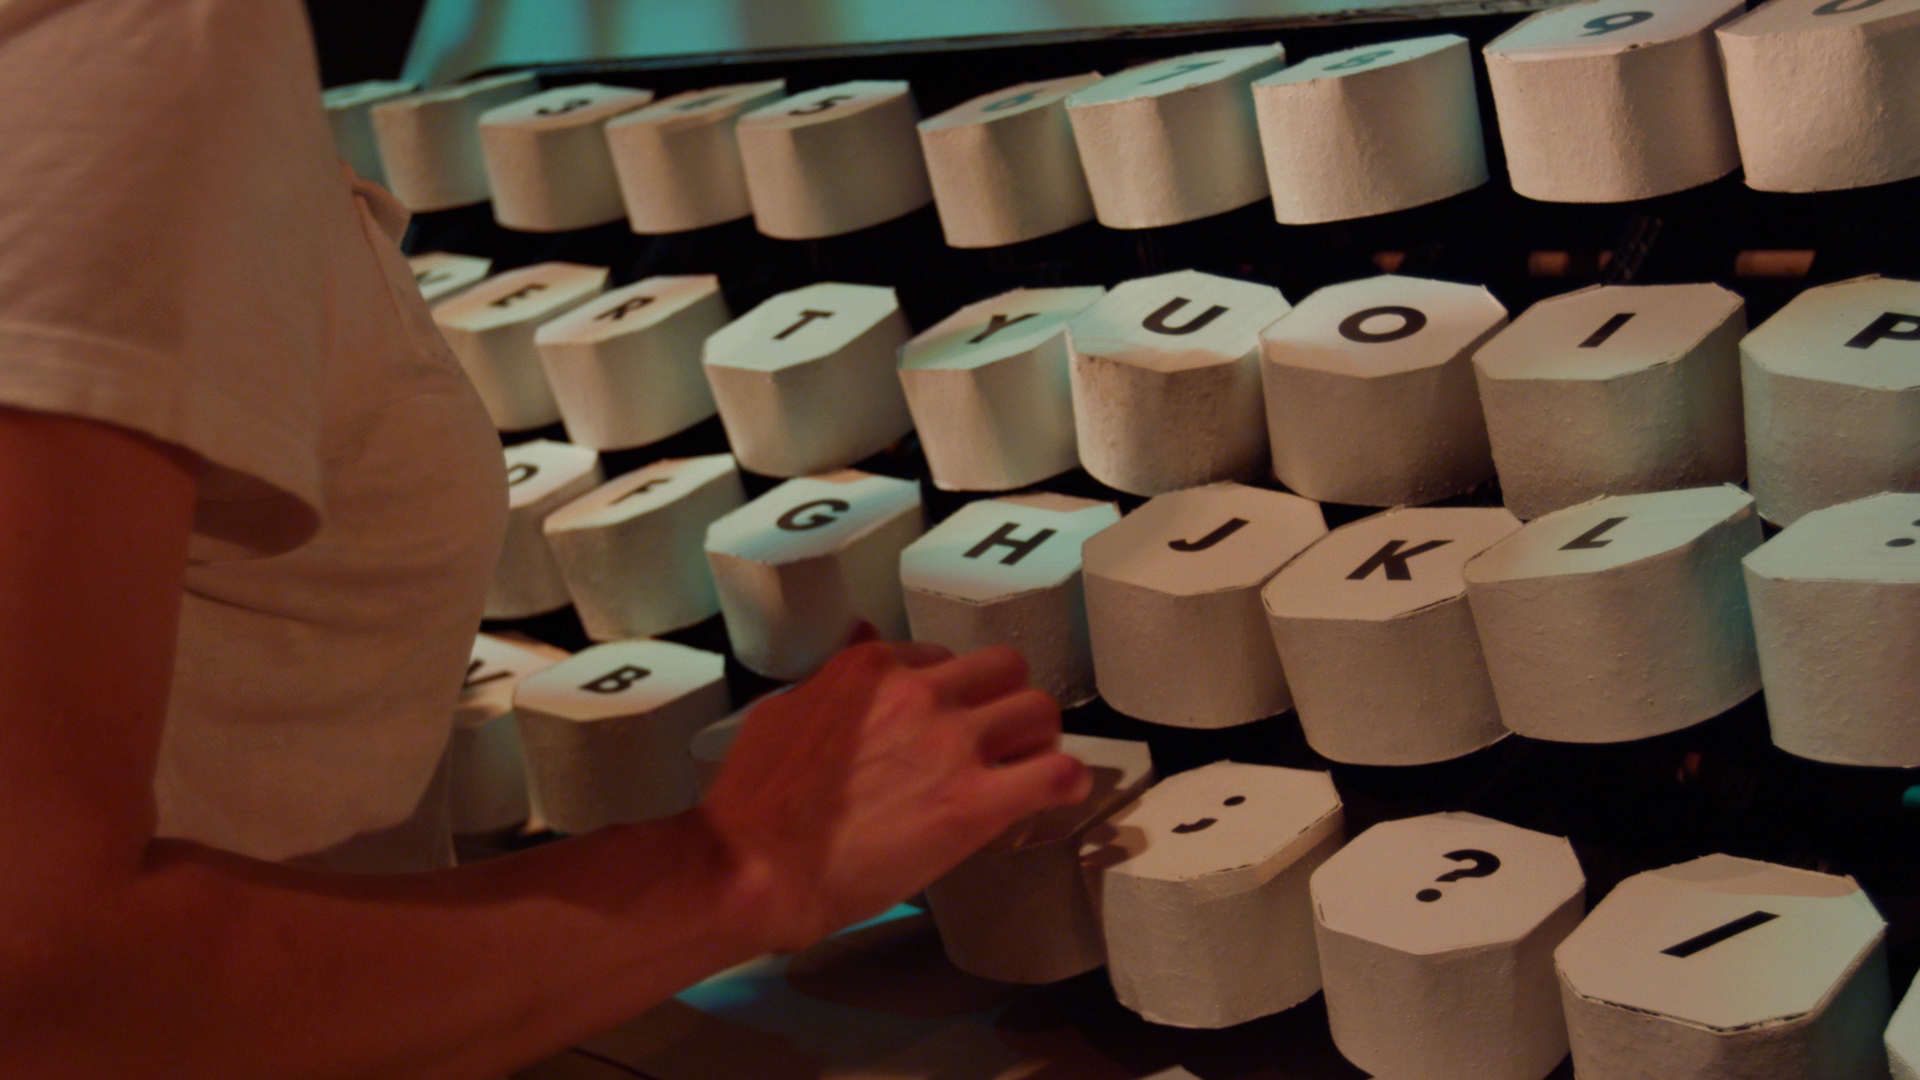 Typing; the first scene, an operatic journal entry